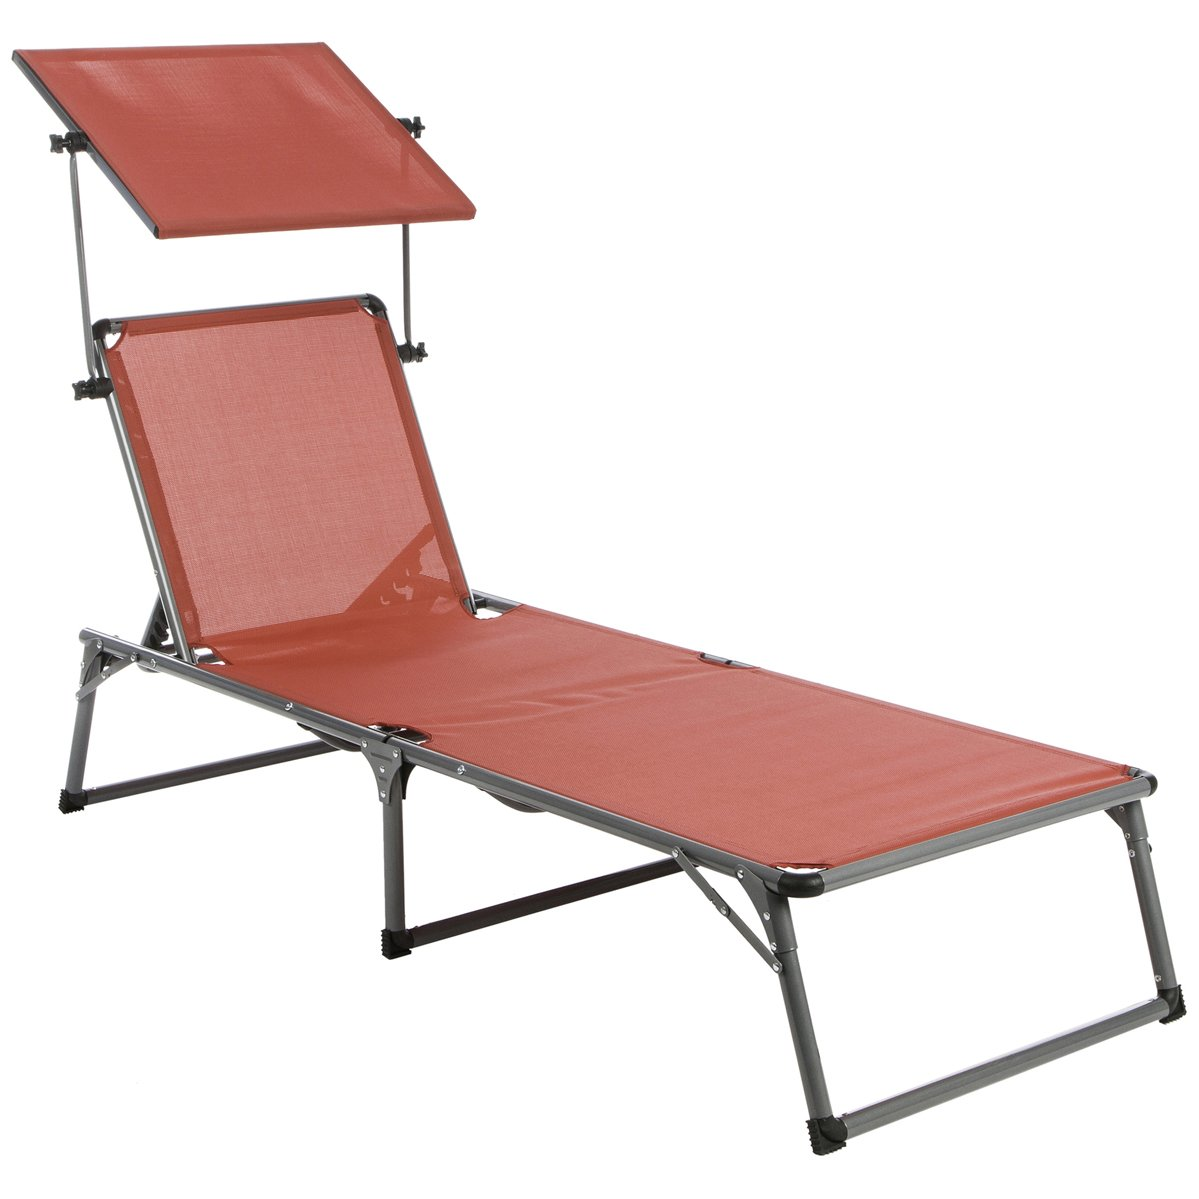 Ultranatura Aluminium Sun Lounger Nizza with canopy - 76 x 26 x 12 inches (193 x 67 x 32 cm), Beige 20010000D63A